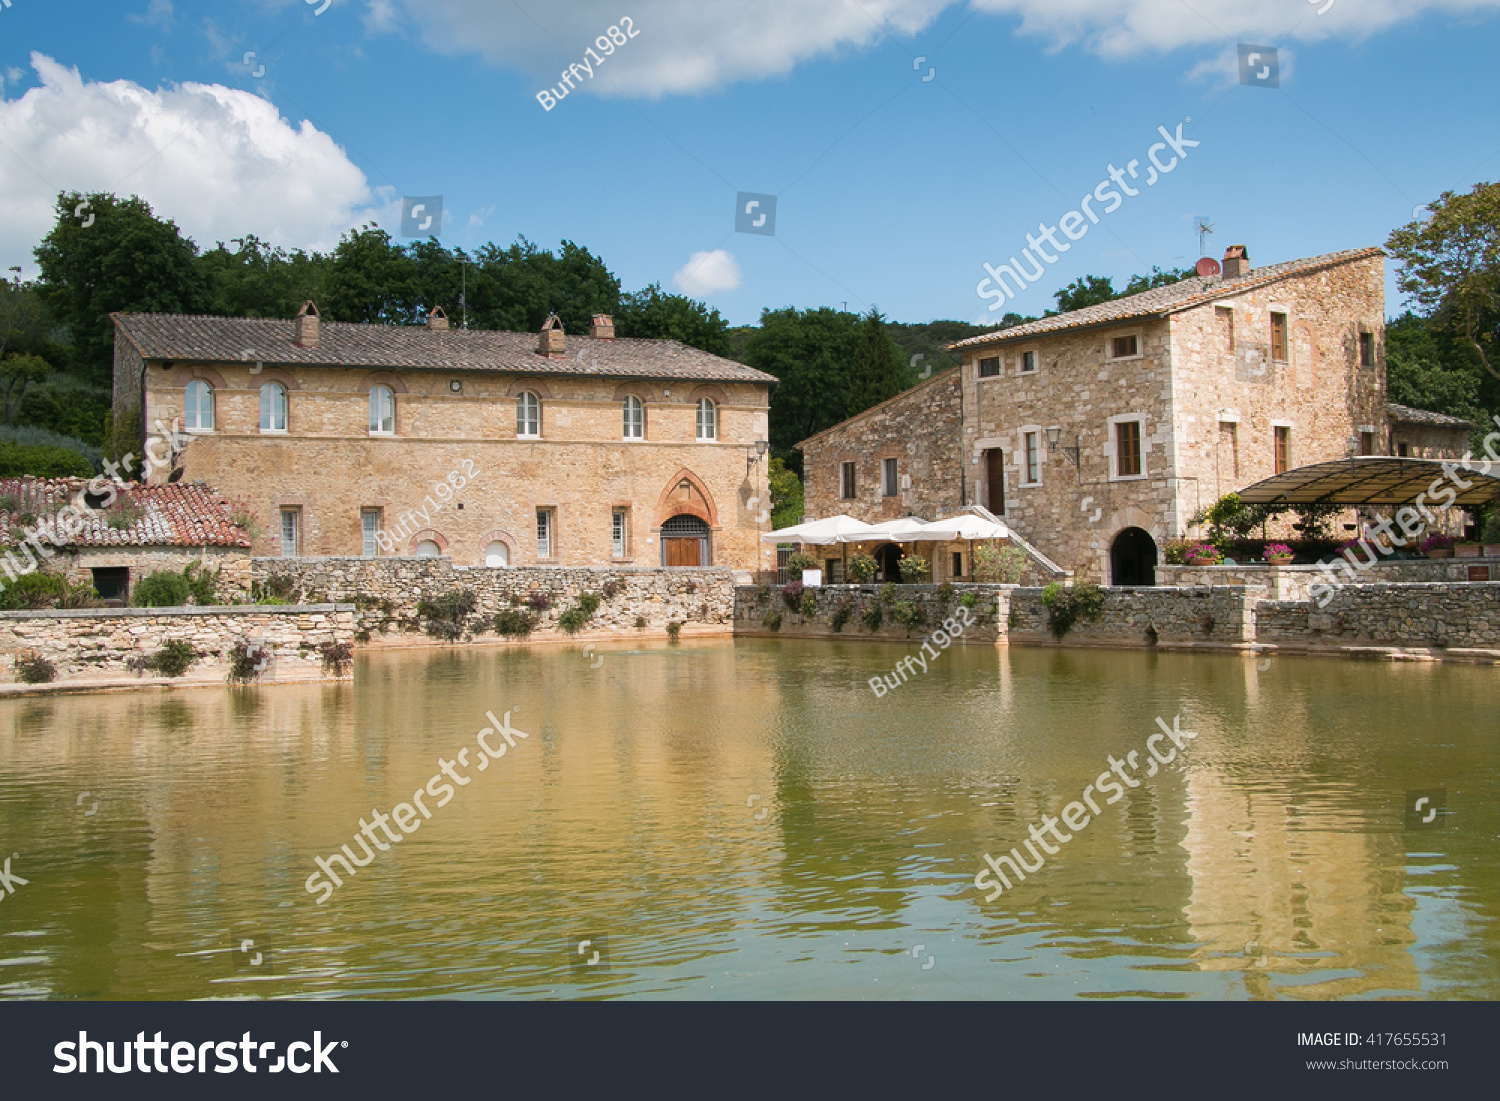 Bagno Vignoni Free Thermal Baths Photo Famous Thermal Baths Medieval Village Stock Photo Edit Now